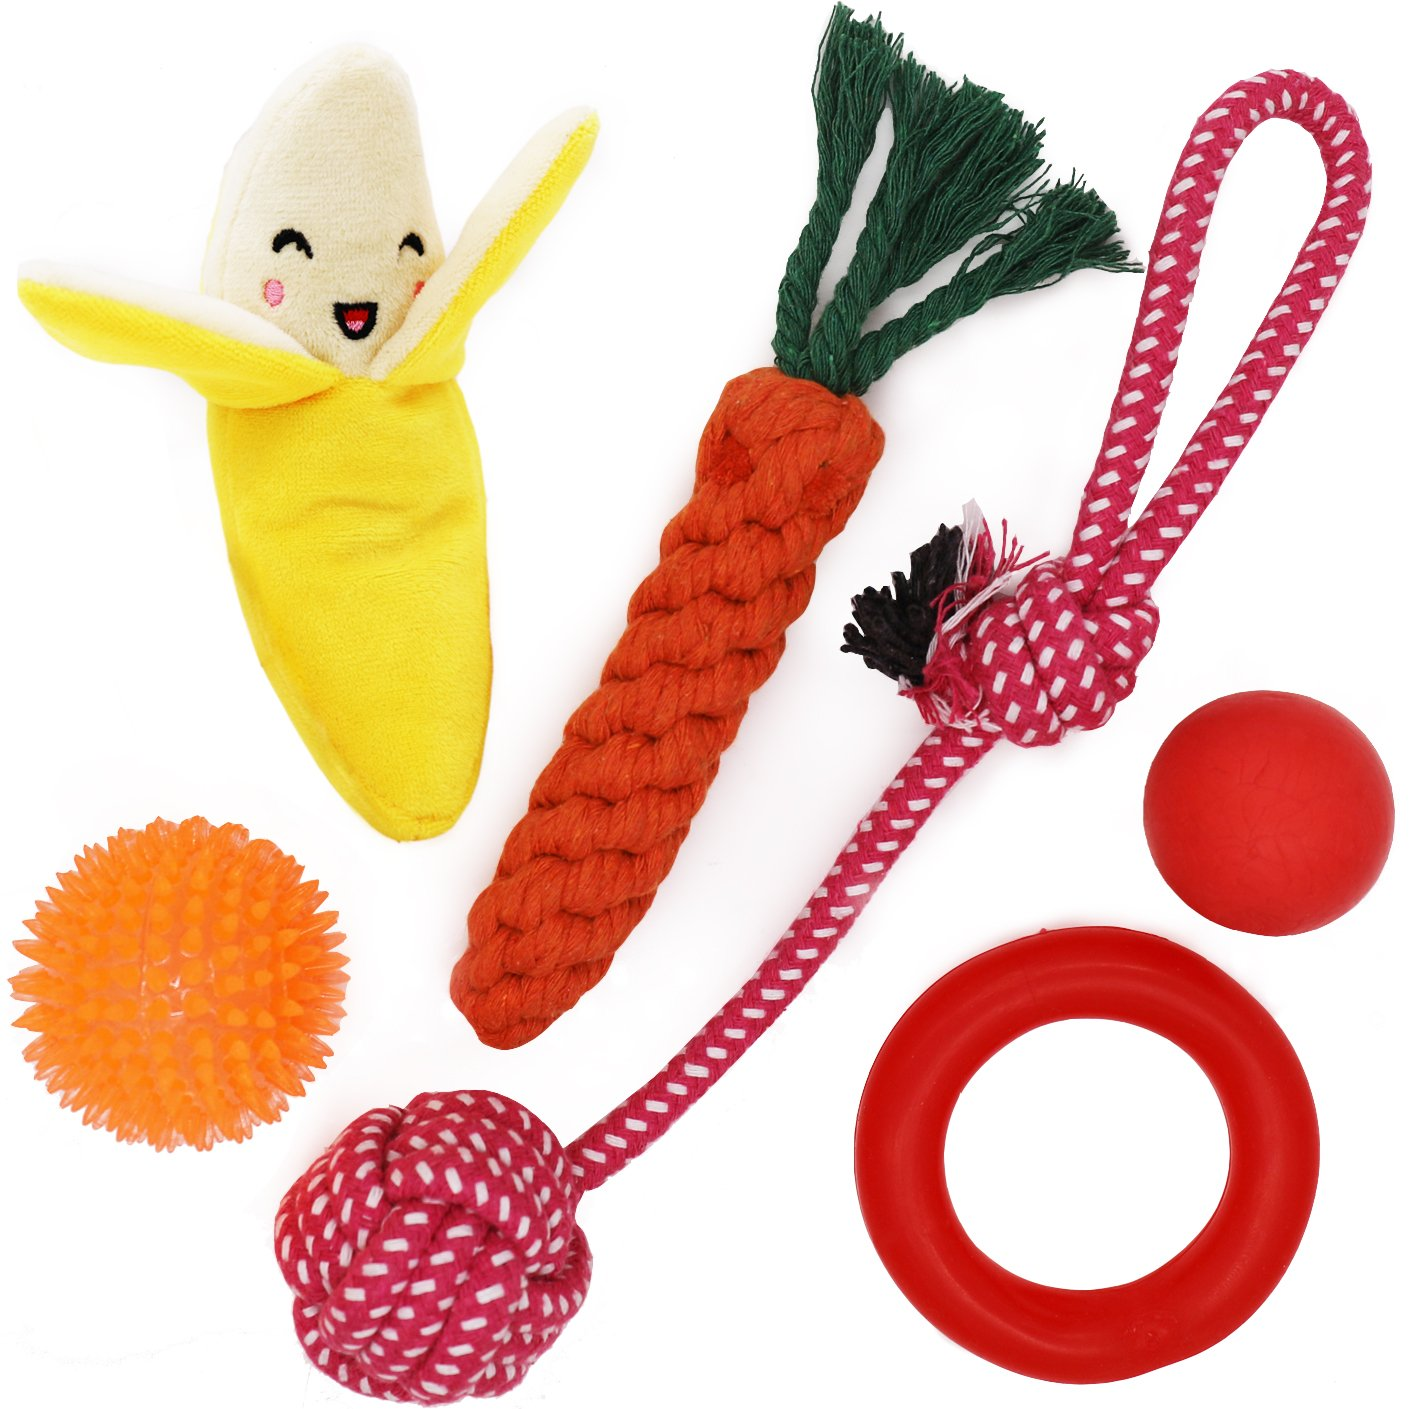 Small Dog Toys Set 6 Pack Ball Rope and Chew Toys for Small Dog Puppy by yotache (Image #1)